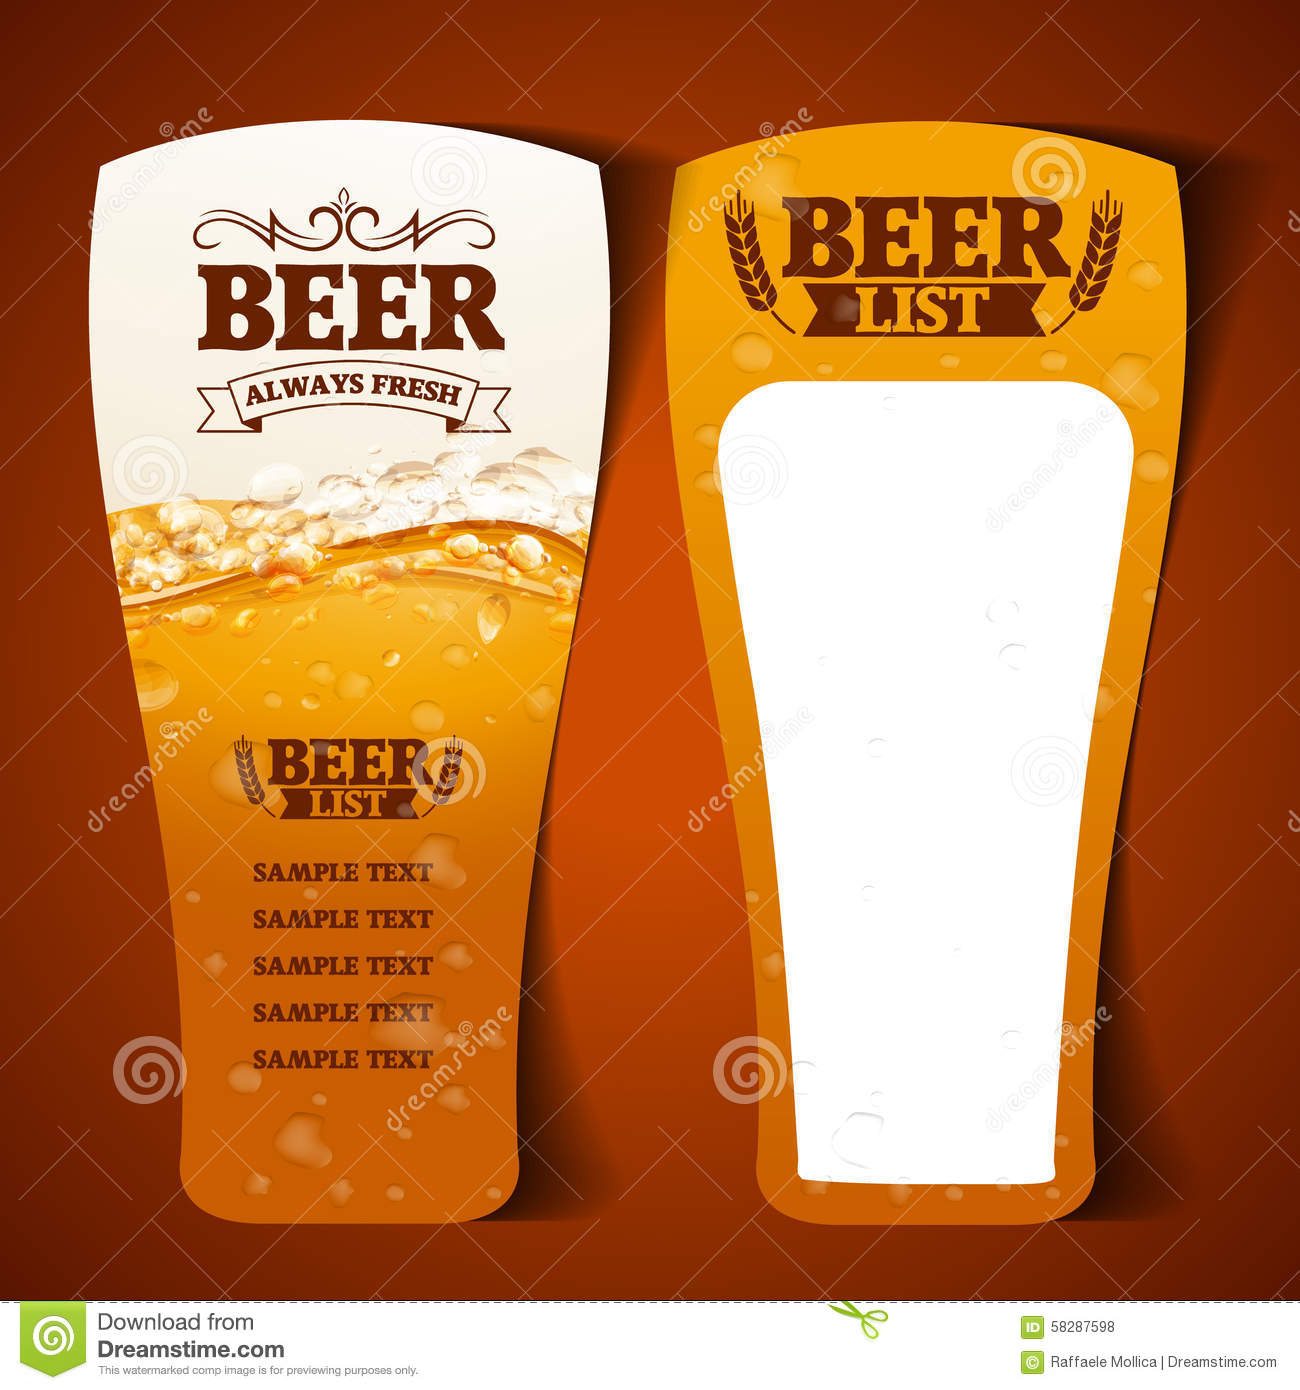 Beer Menu Glass Vector Image 58287598 – Beer Menu